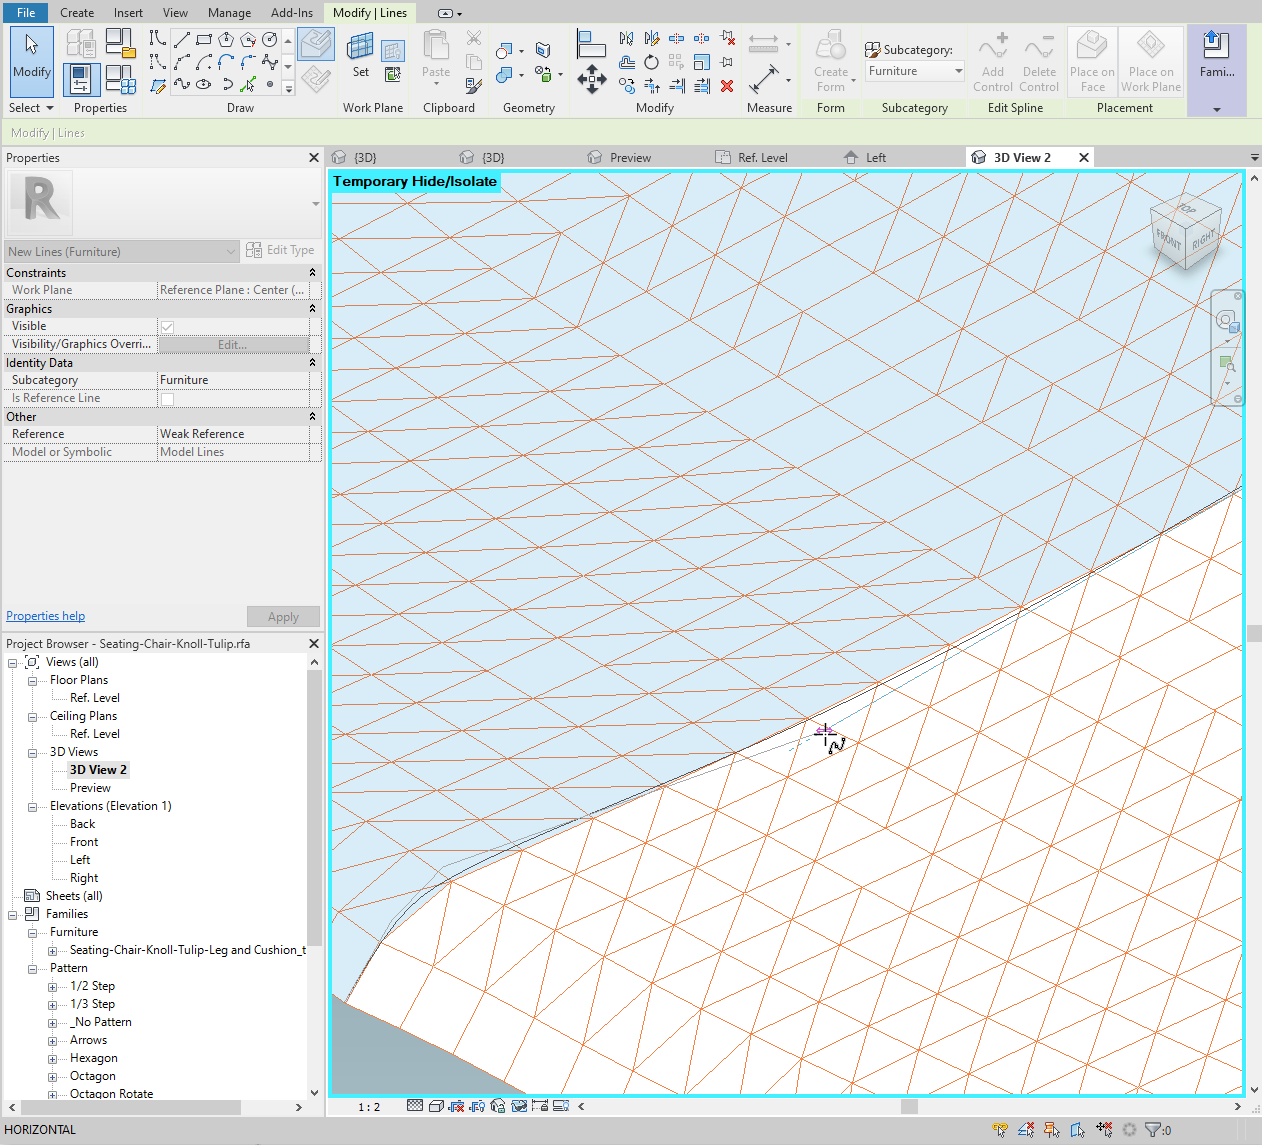 Adjust the spline using the control vertices to follow the intersection as closely as possible.